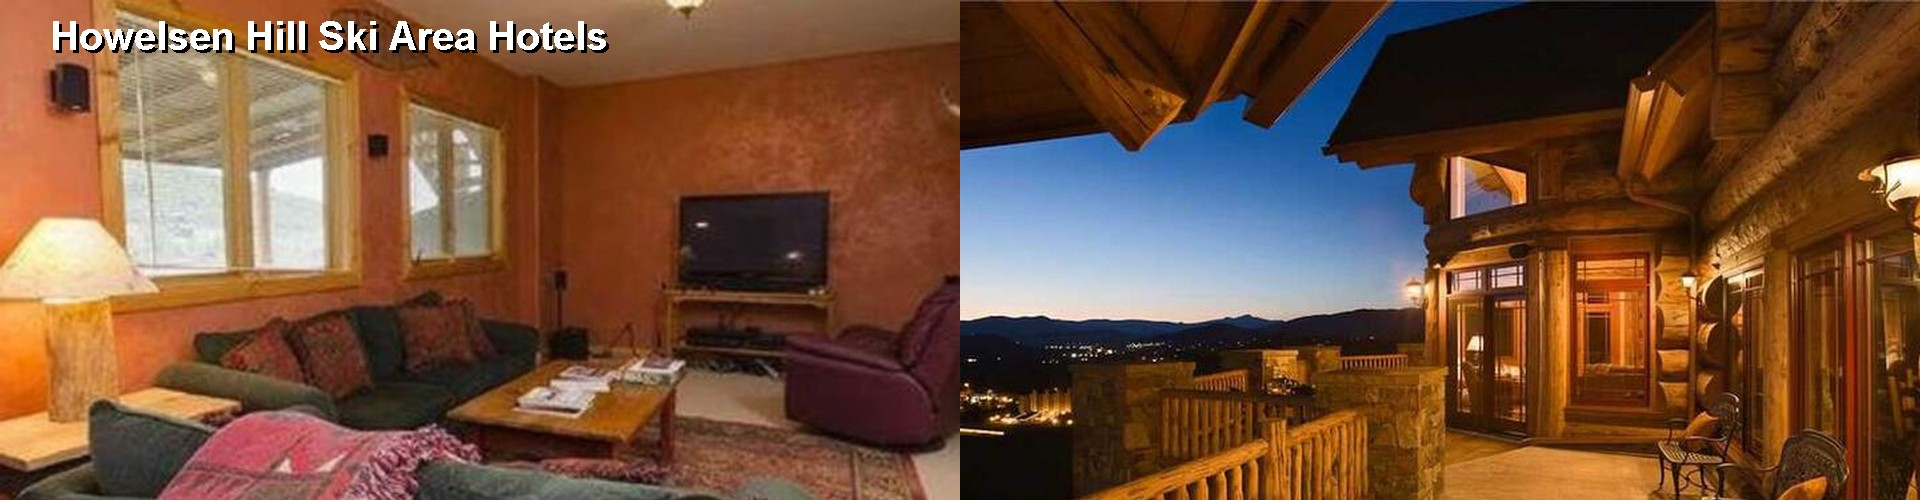 5 Best Hotels near Howelsen Hill Ski Area